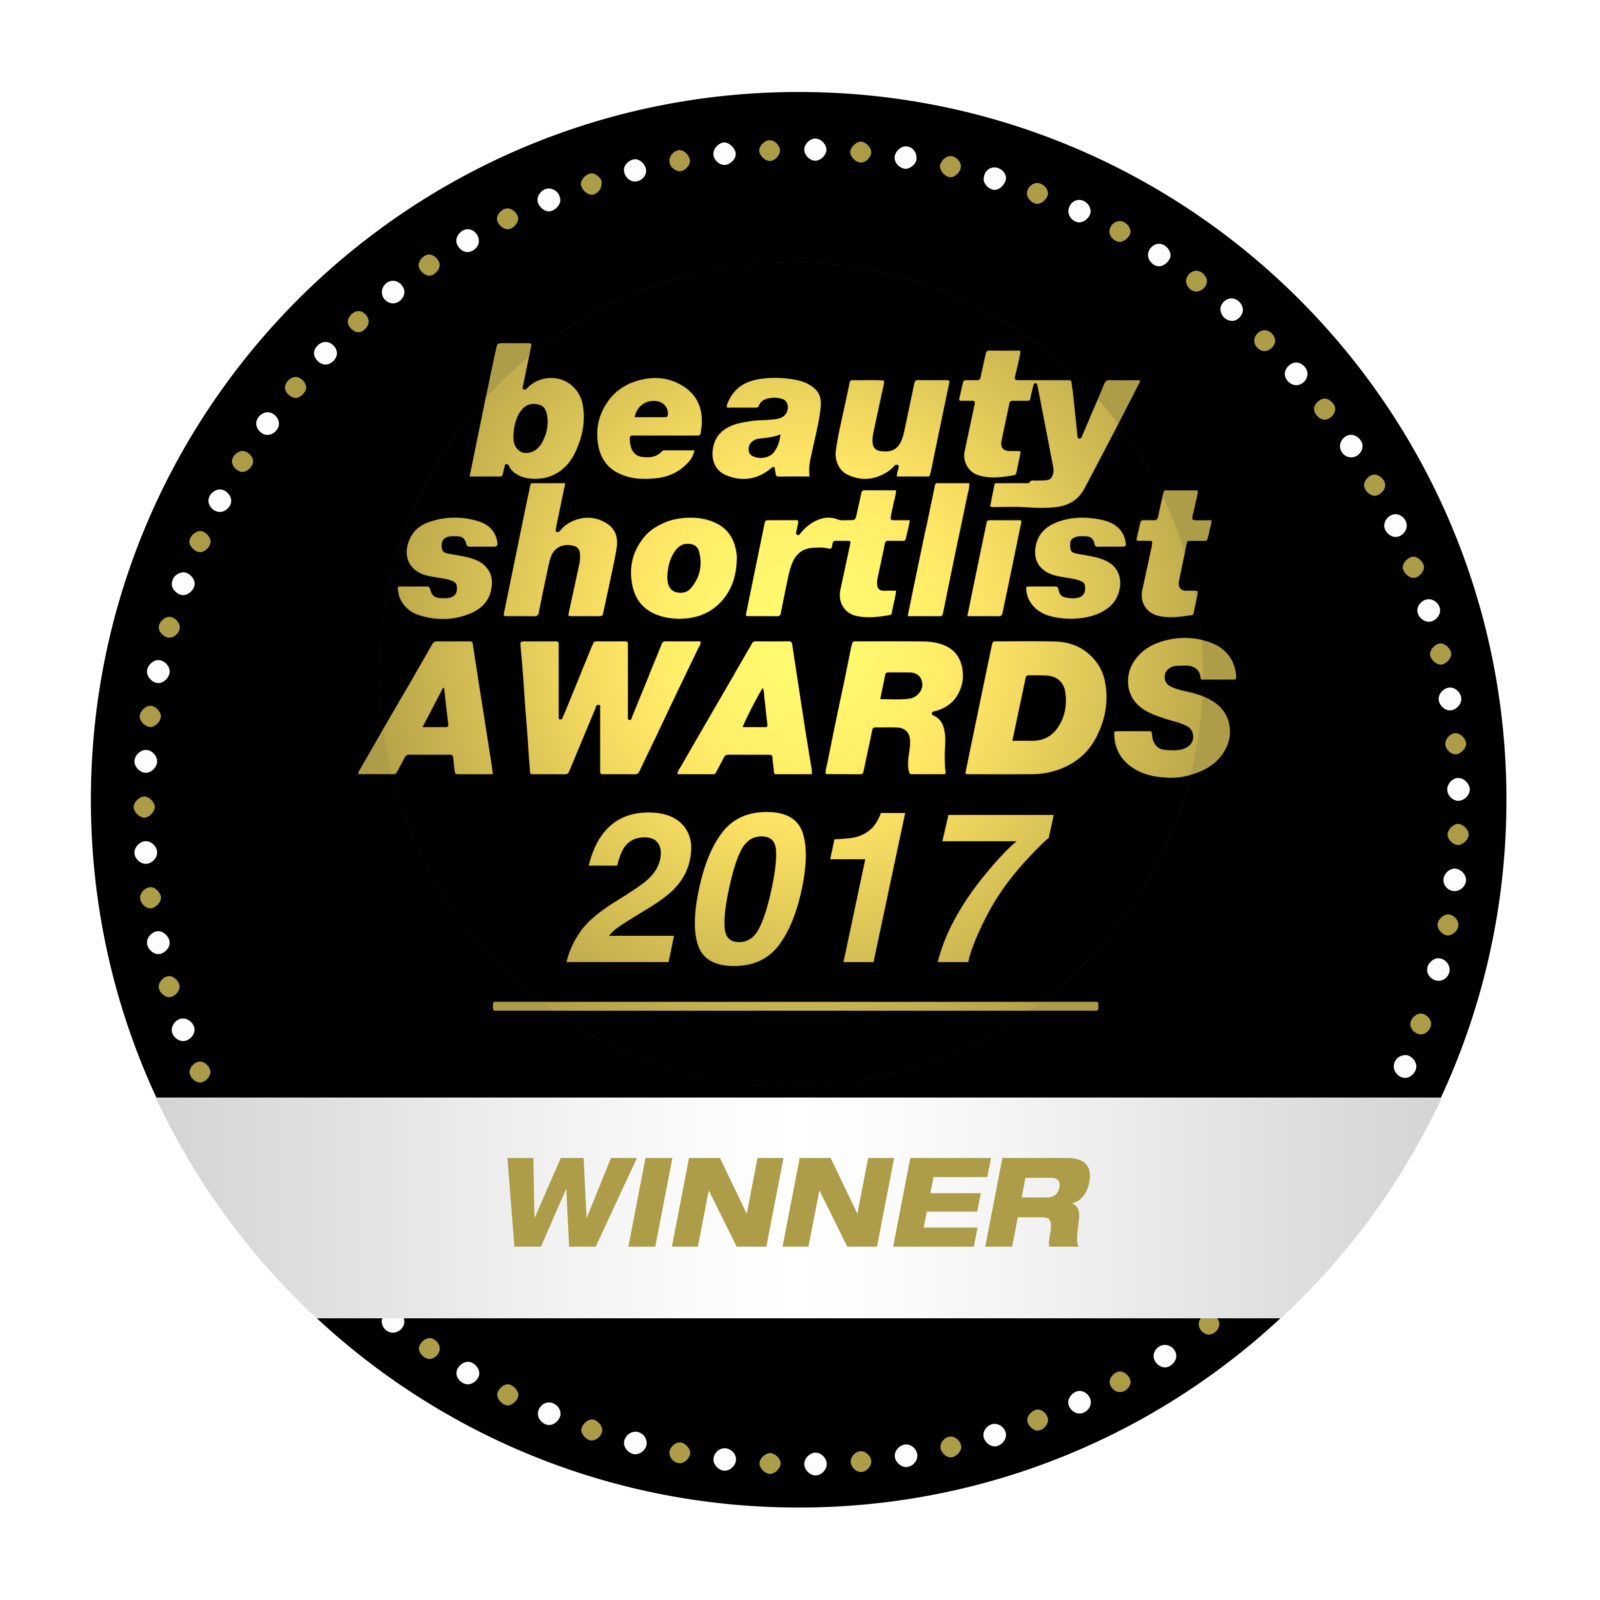 Winner 2017 Beauty Shortlist Award